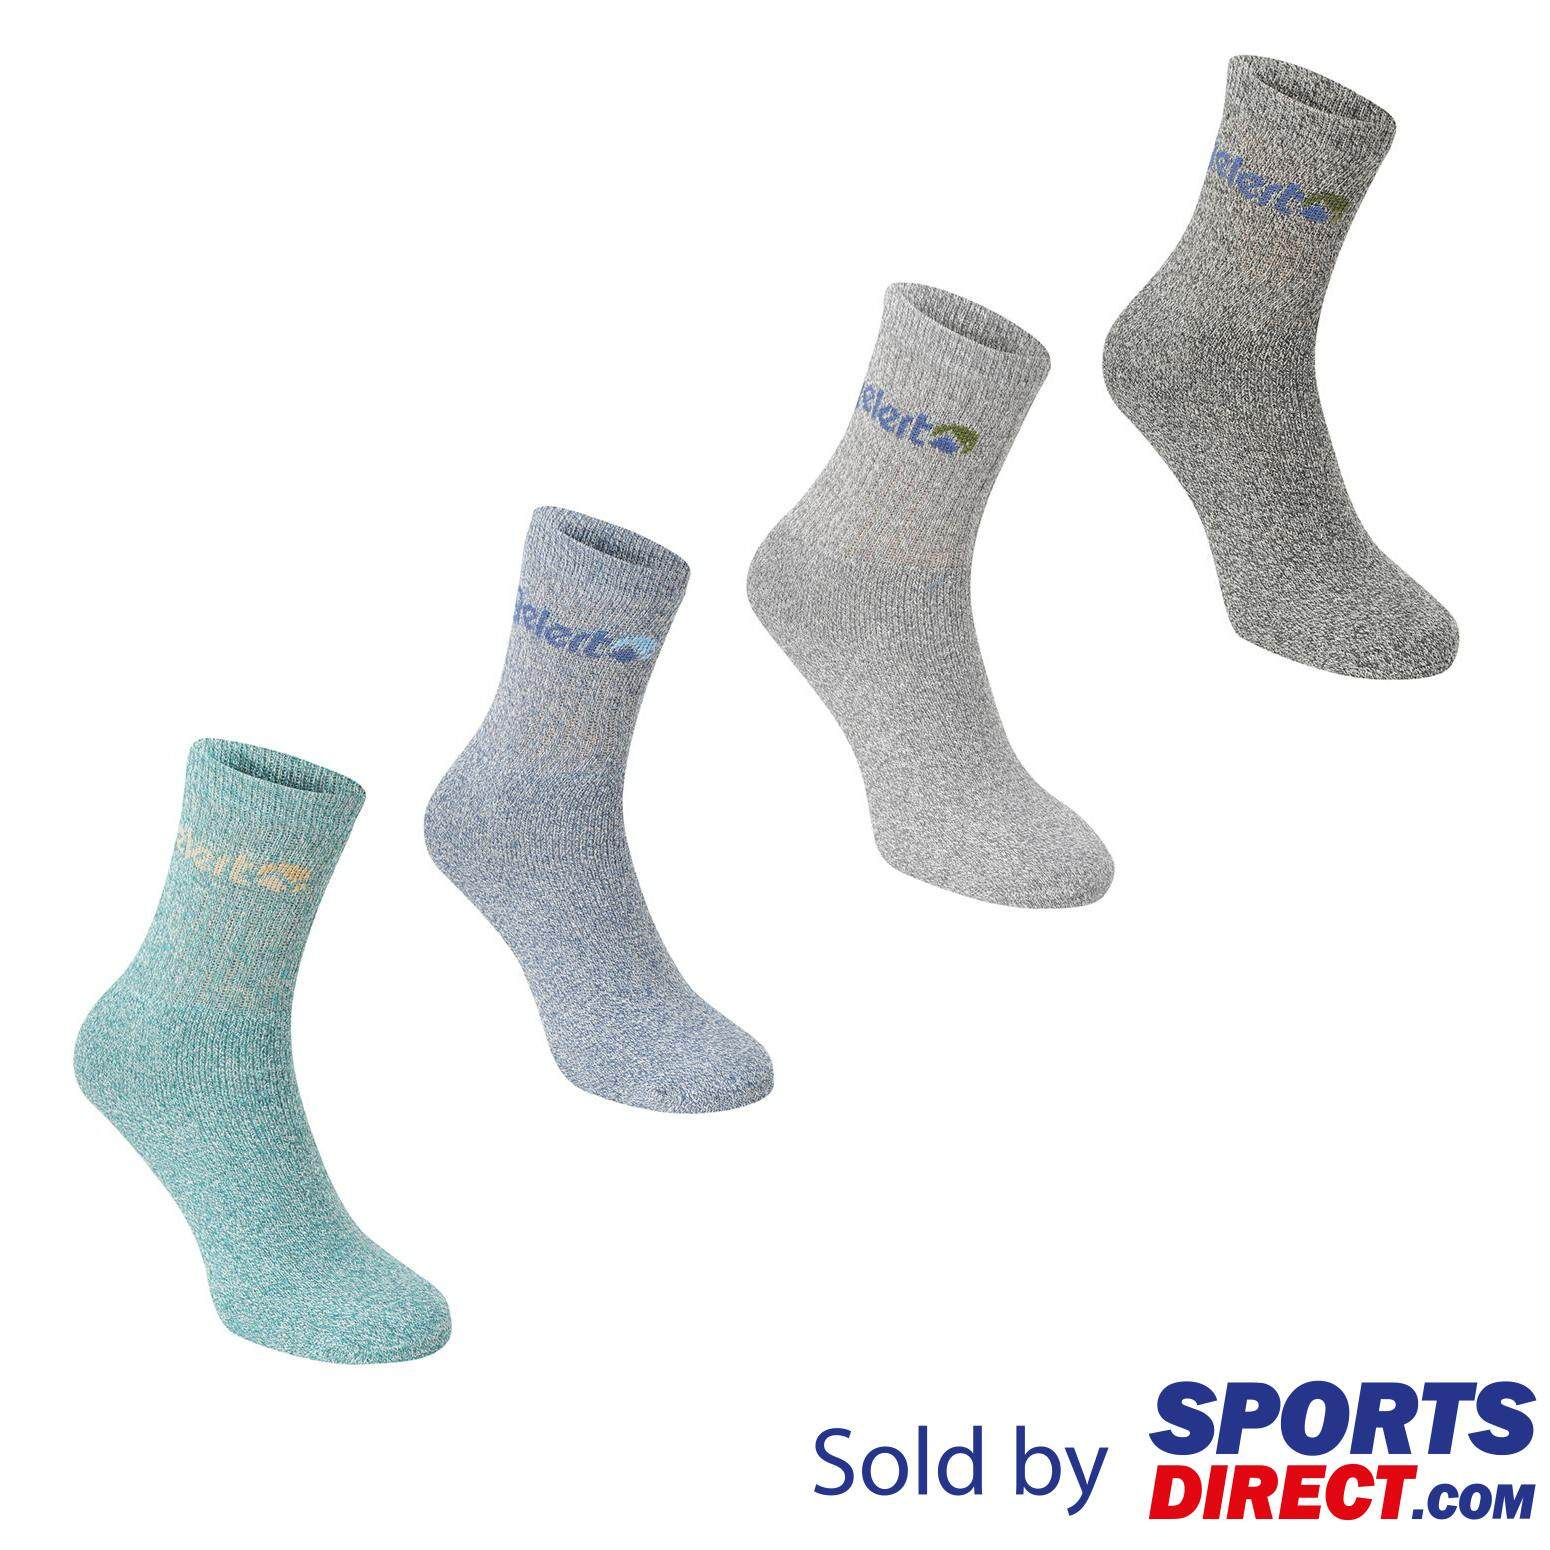 Gelert Womens Walking Boot Sock 4 Pack (turquoise) By Sports Direct Mst Sdn Bhd.